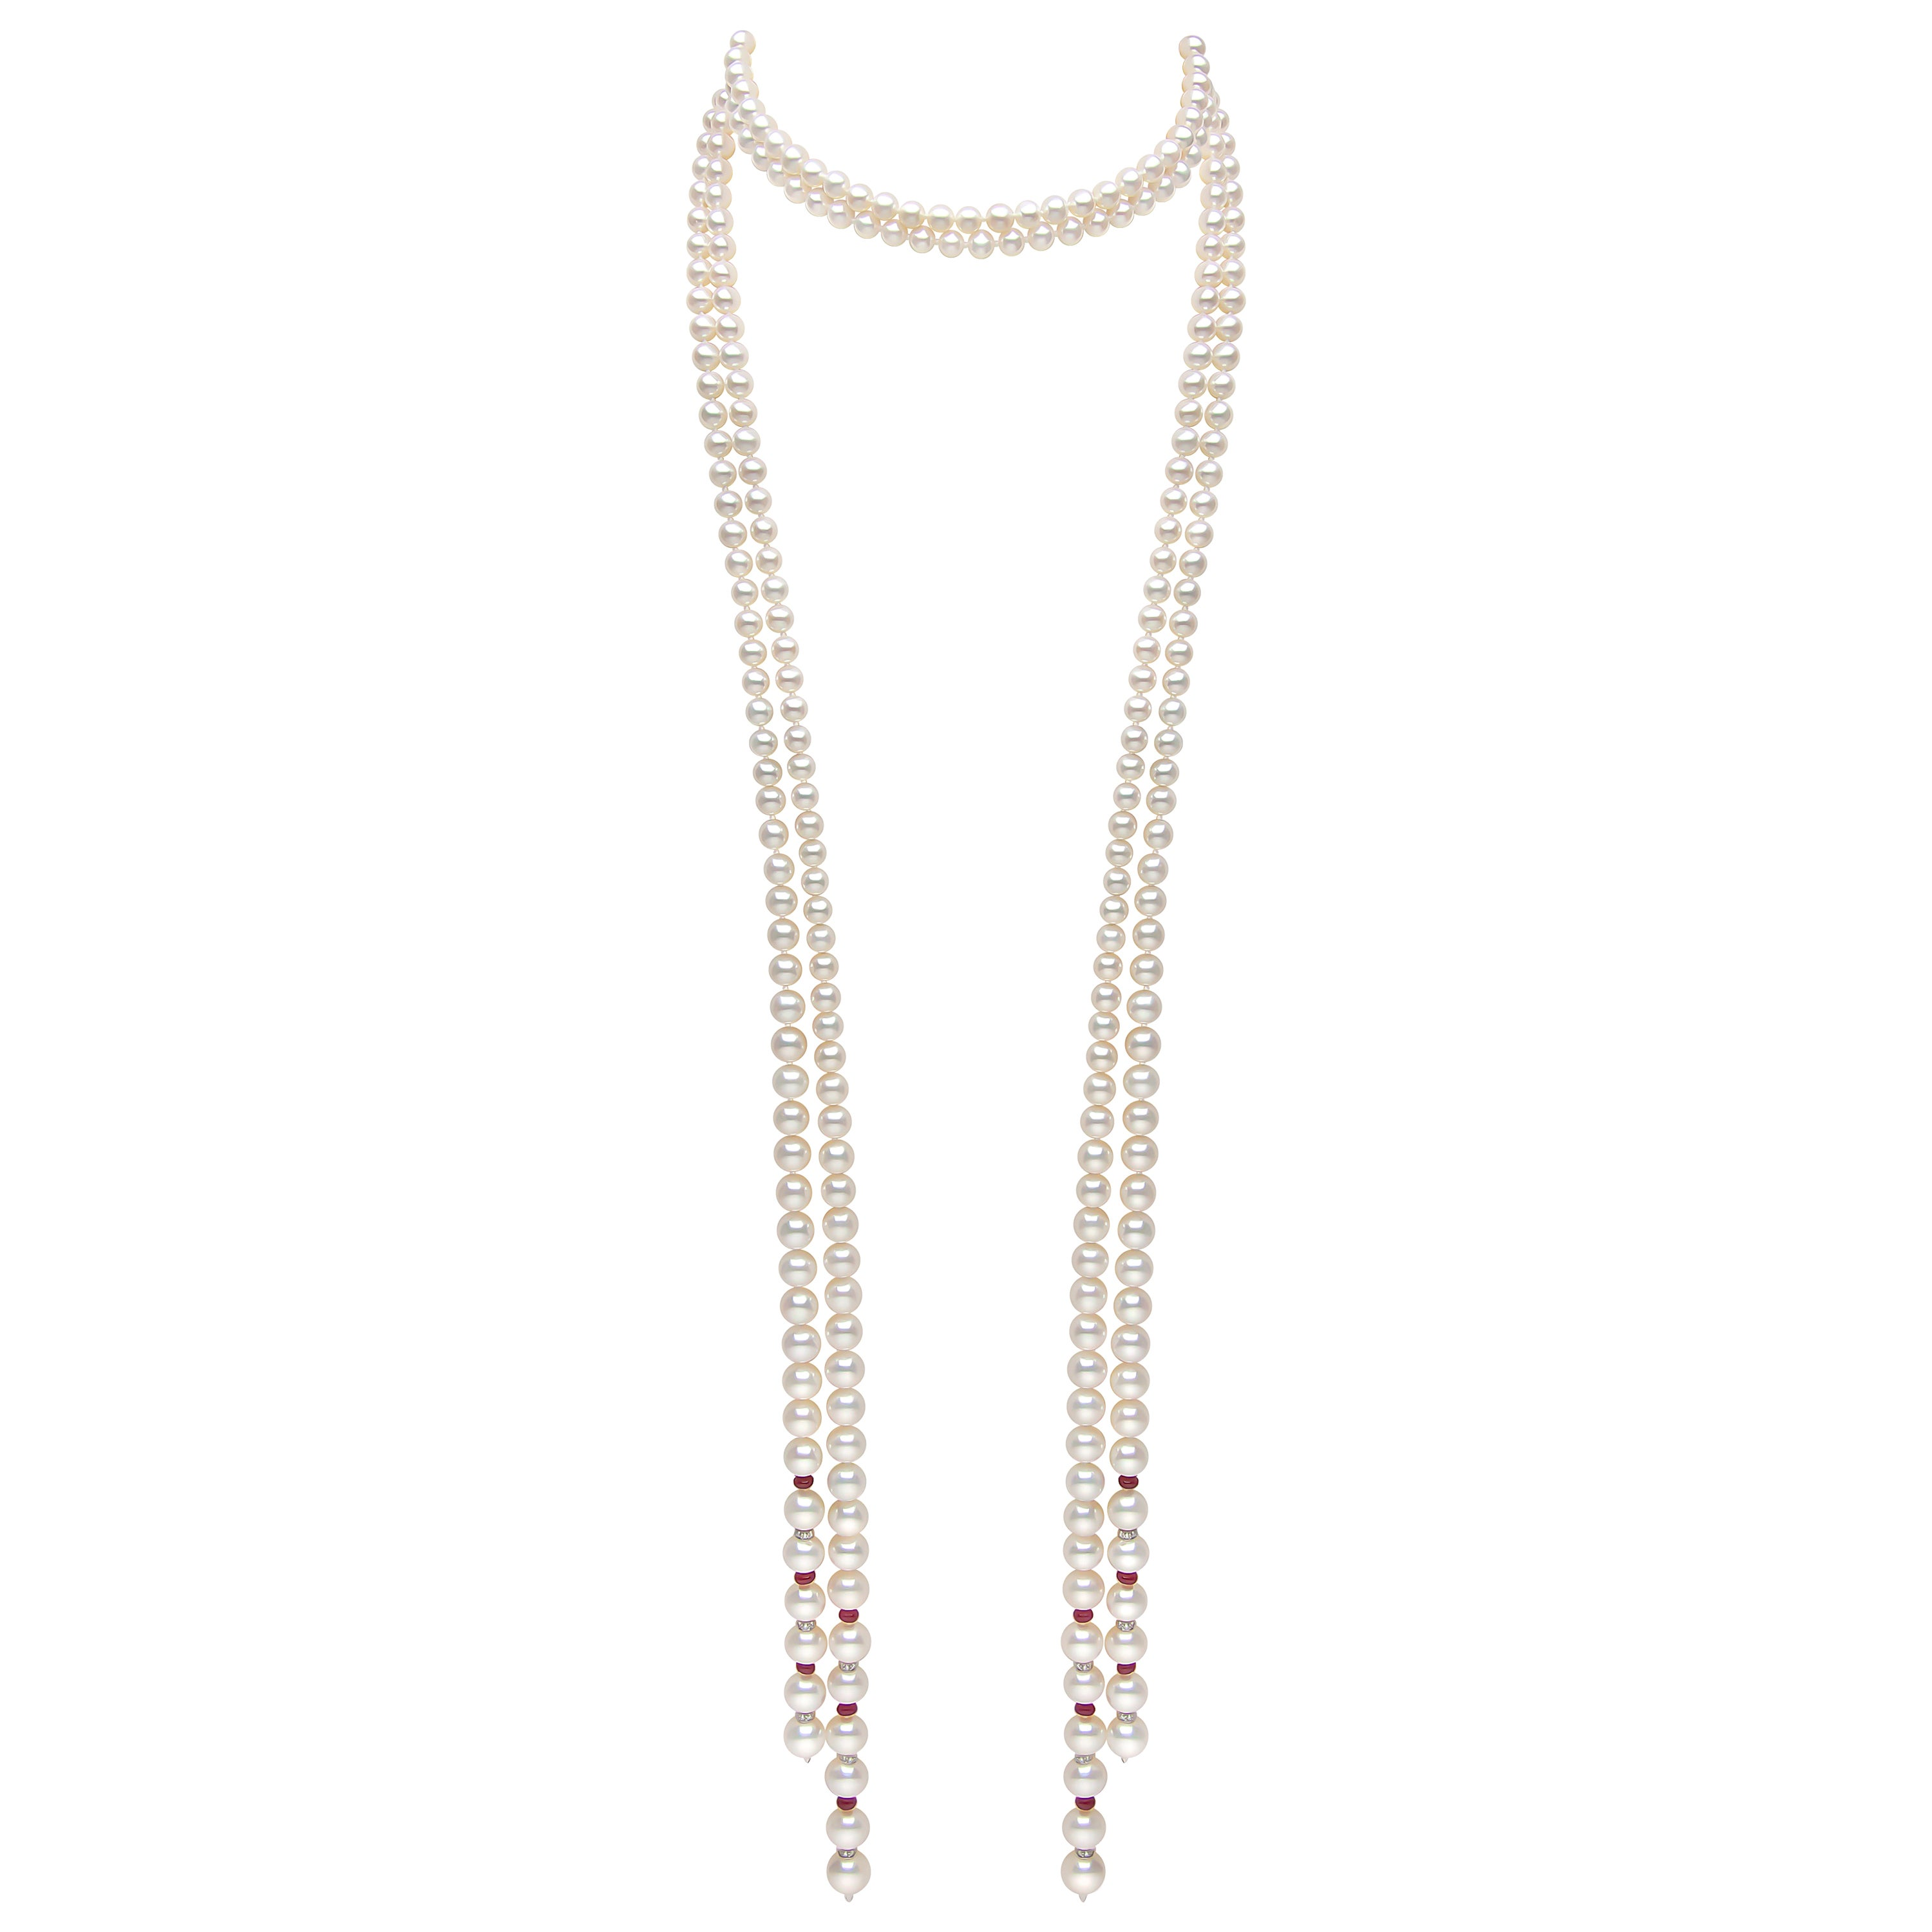 Yoko London Ruby Freshwater Pearl and Diamond Knotted Necklace in 18 Karat Gold